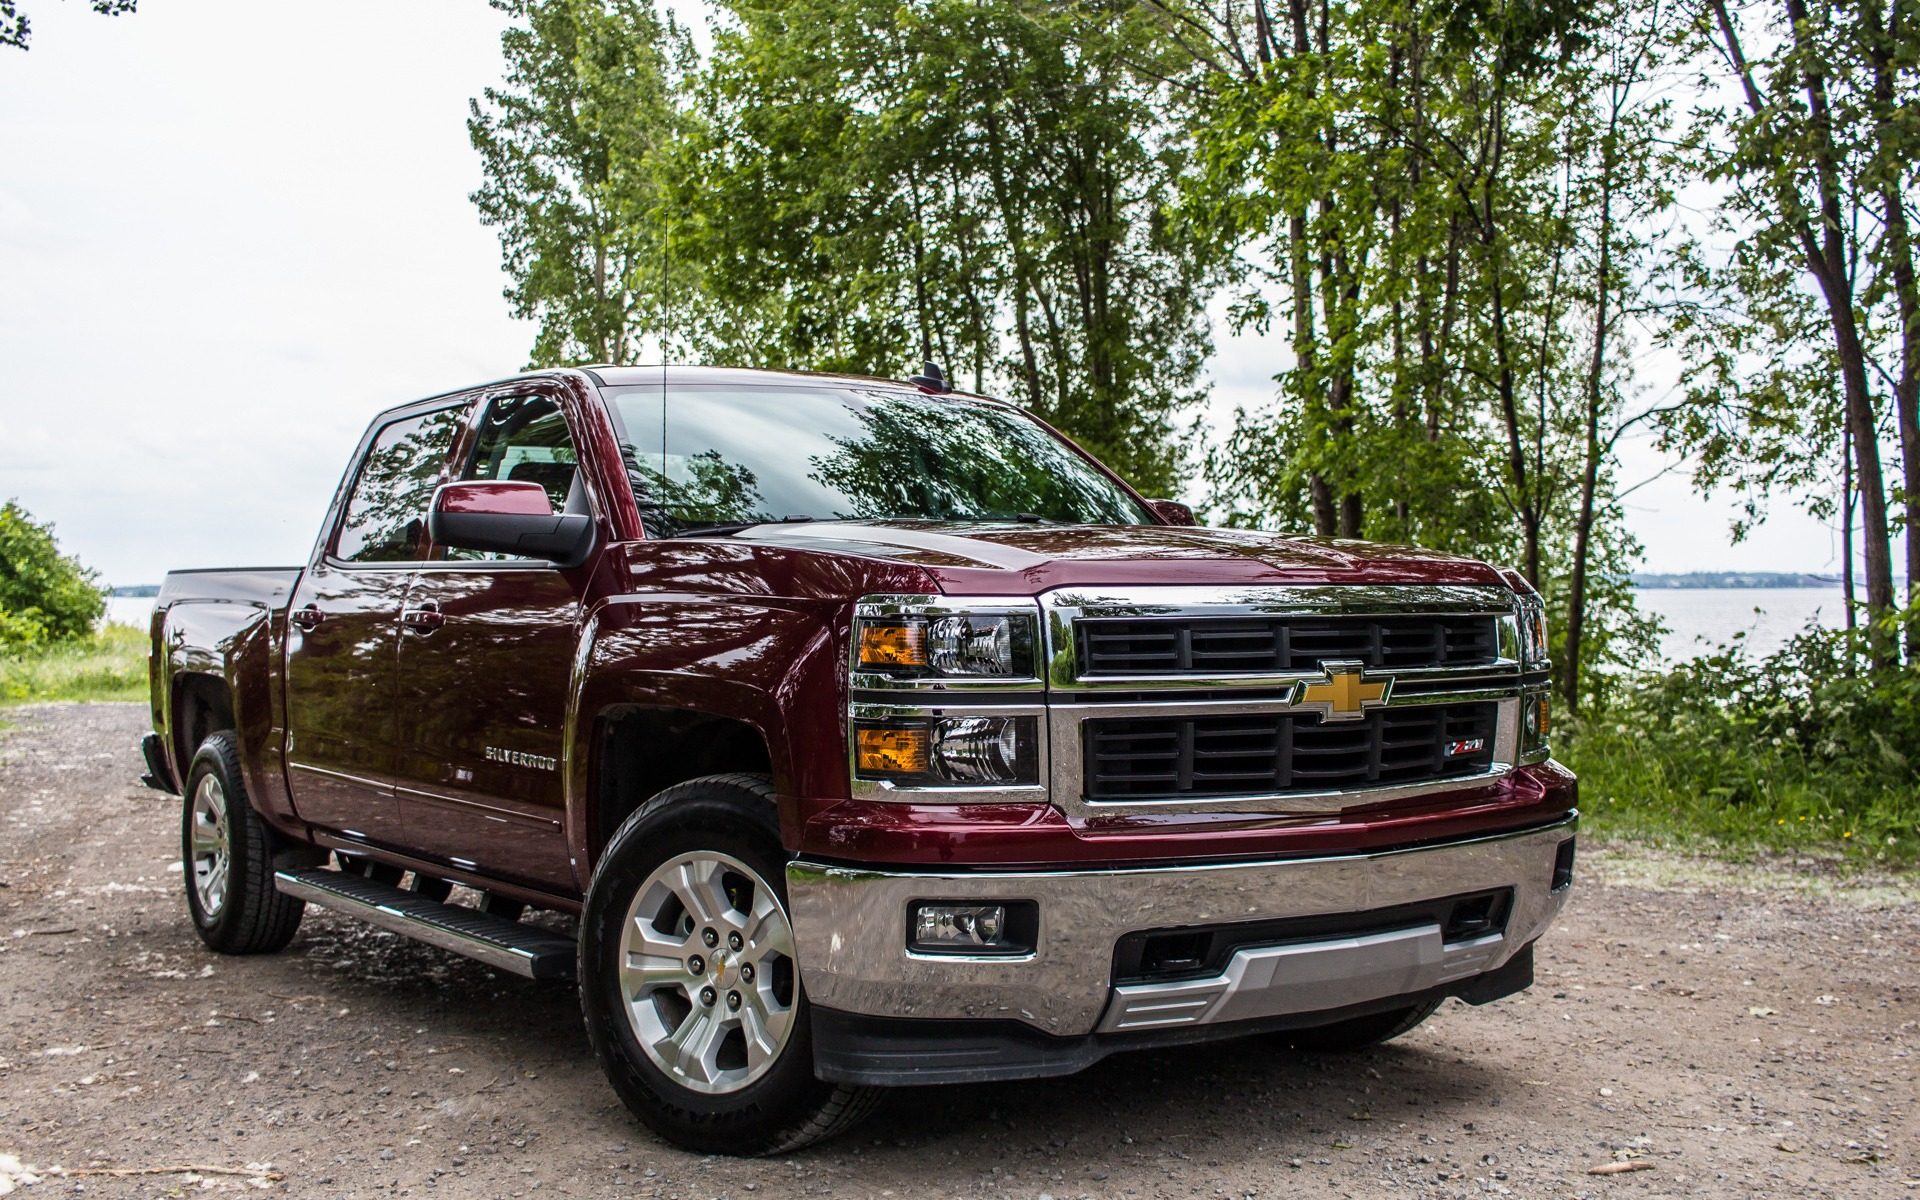 chevrolet silverado 2lt z71 2015 si vous voulez absolument un v8 guide auto. Black Bedroom Furniture Sets. Home Design Ideas